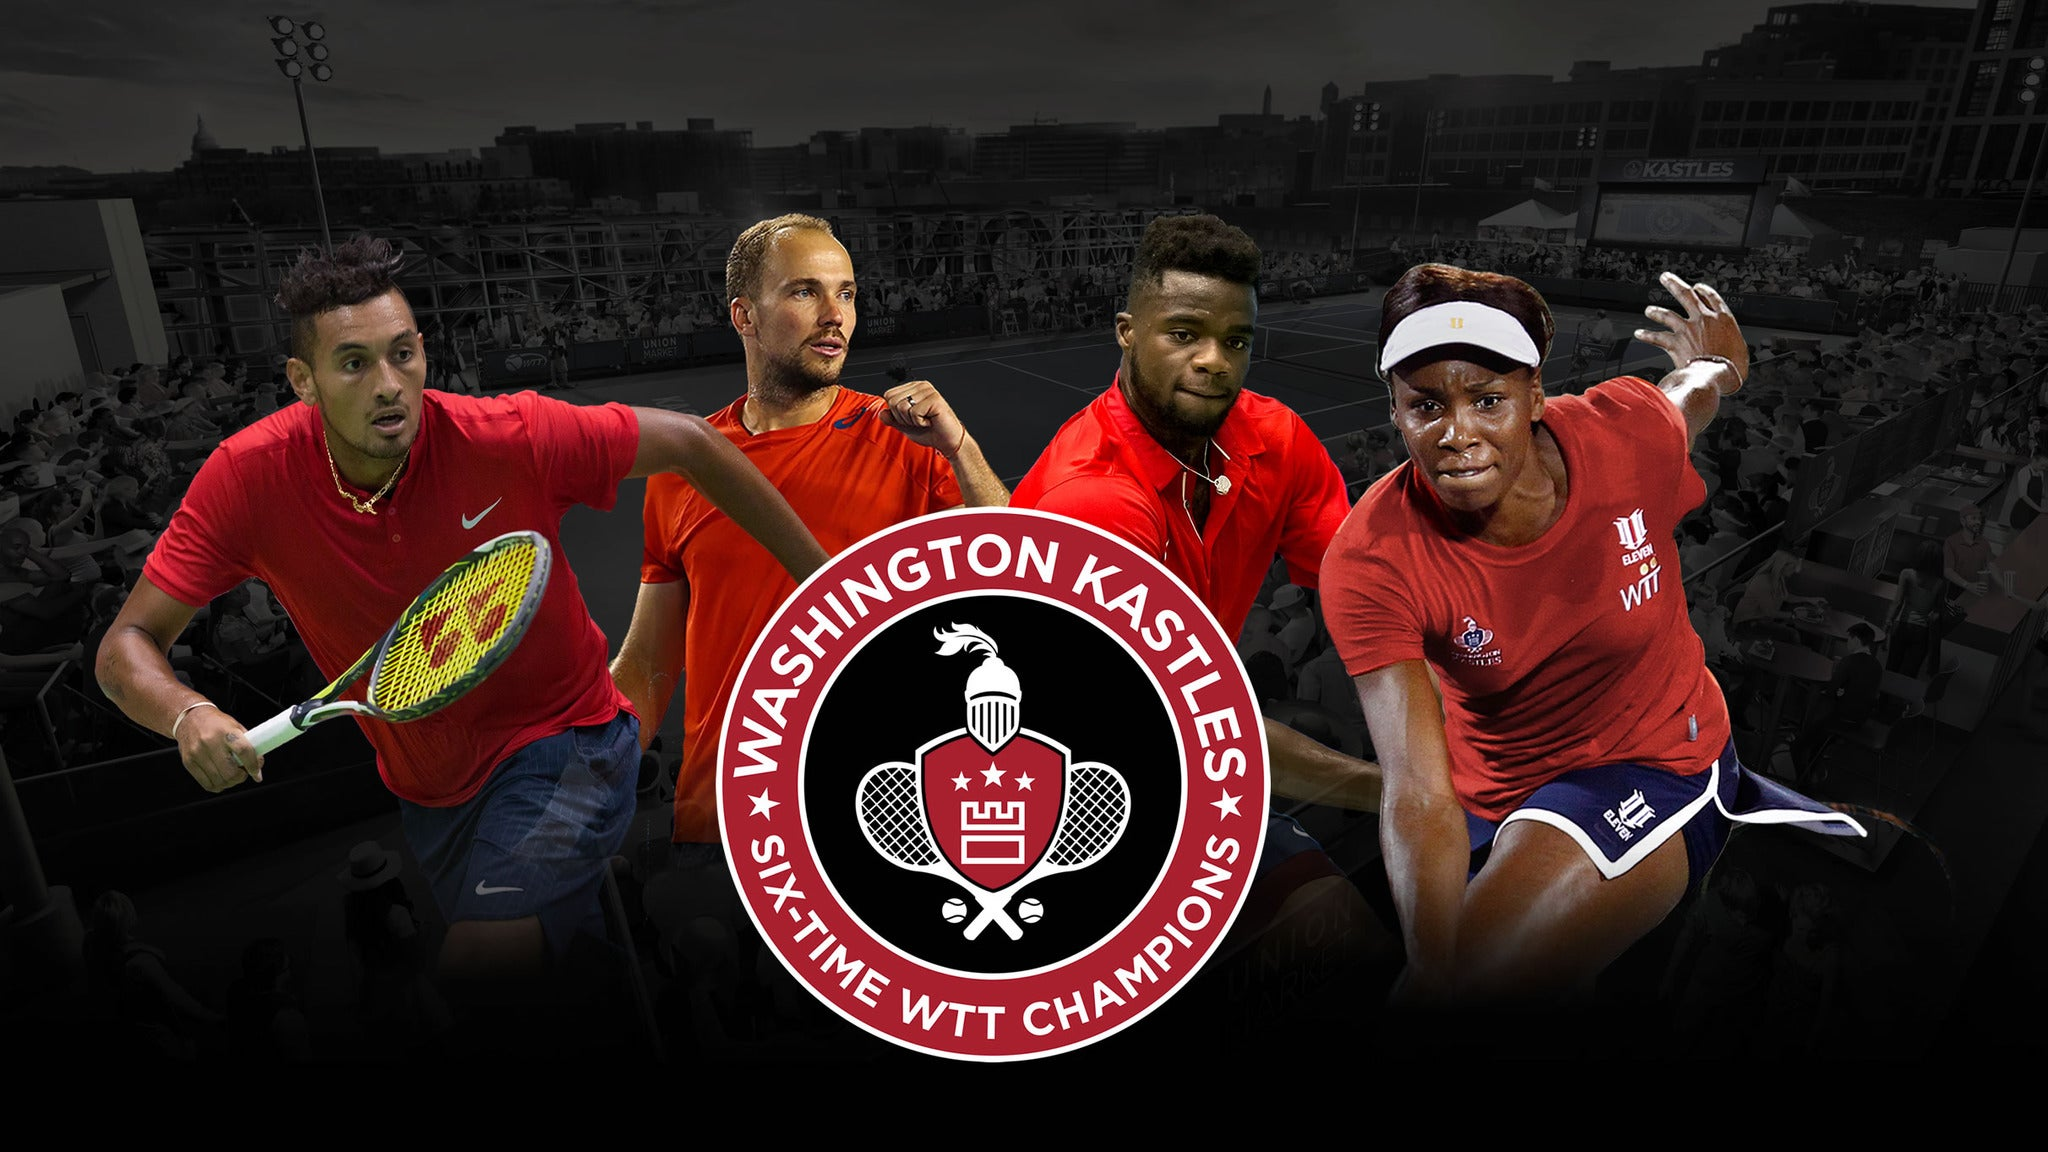 Washington Kastles v Orange County Breakers